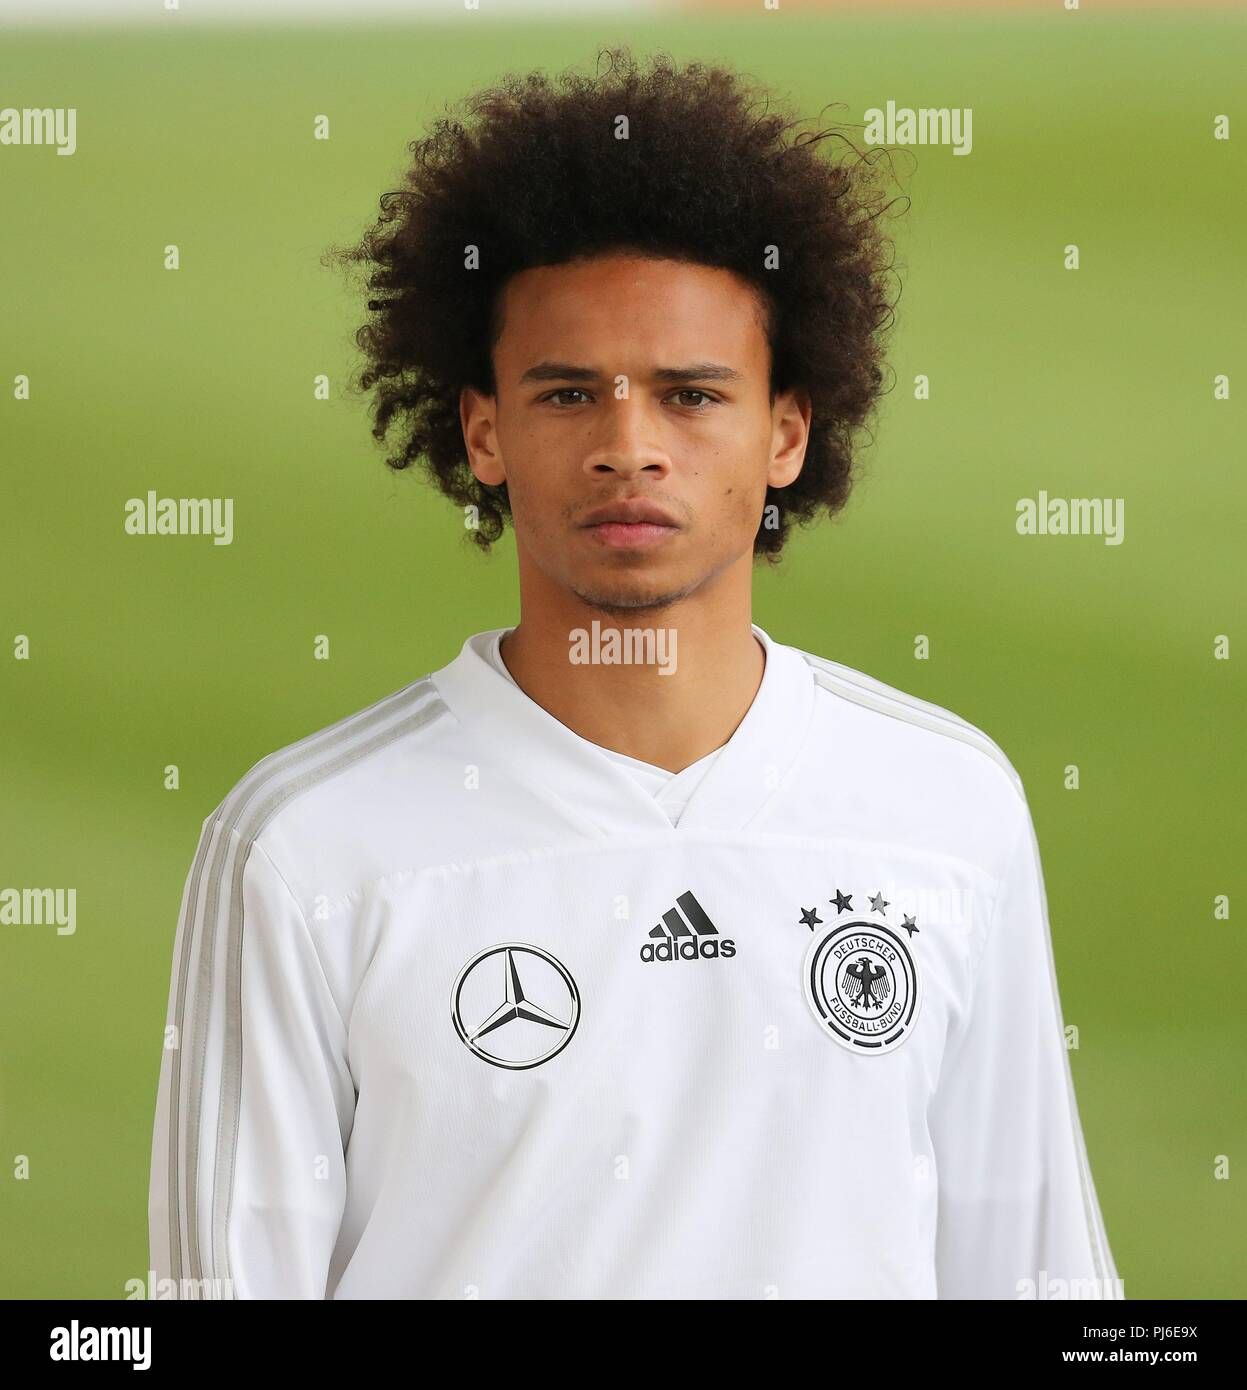 firo: 04.09.2018, Fuvuball, football, national team, training, Leroy Sane, DFB, half figure, Germany | usage worldwide - Stock Image